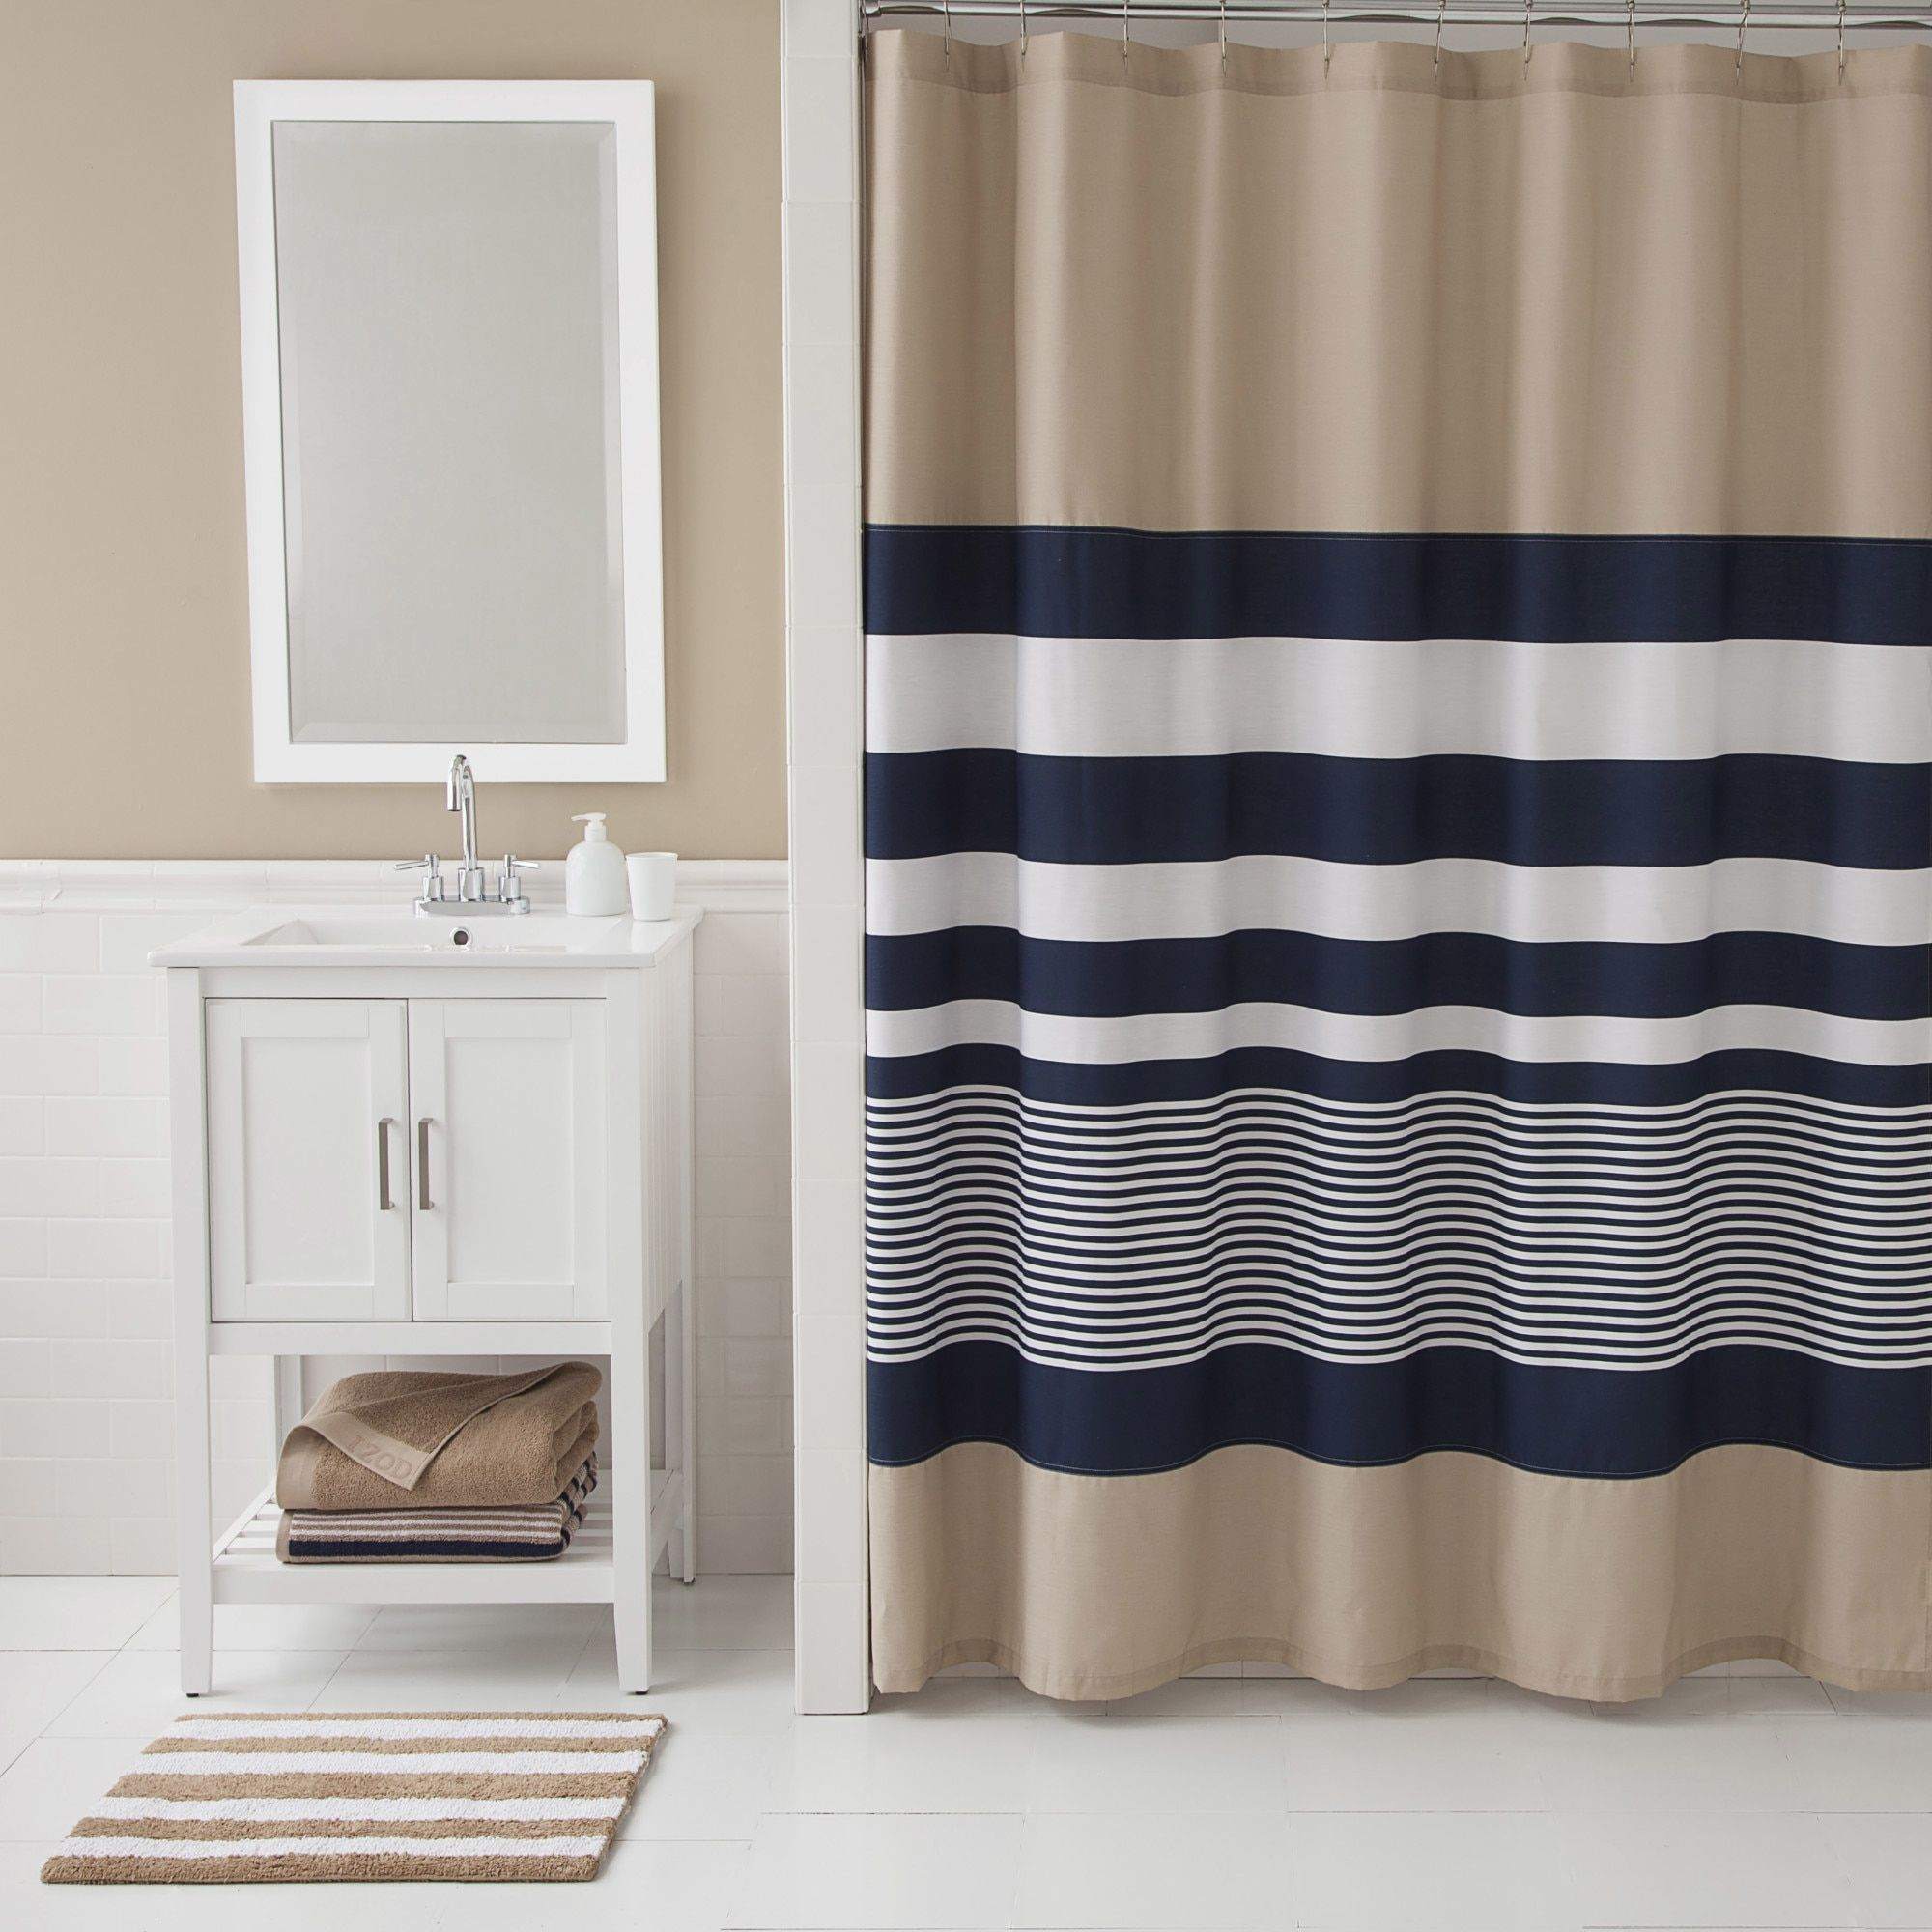 of curtainsbathroom bathroom cozy photos blue valance shower sofa showerith images corner curtains decorating kit size small with sets curtain bathrooms full inspirations